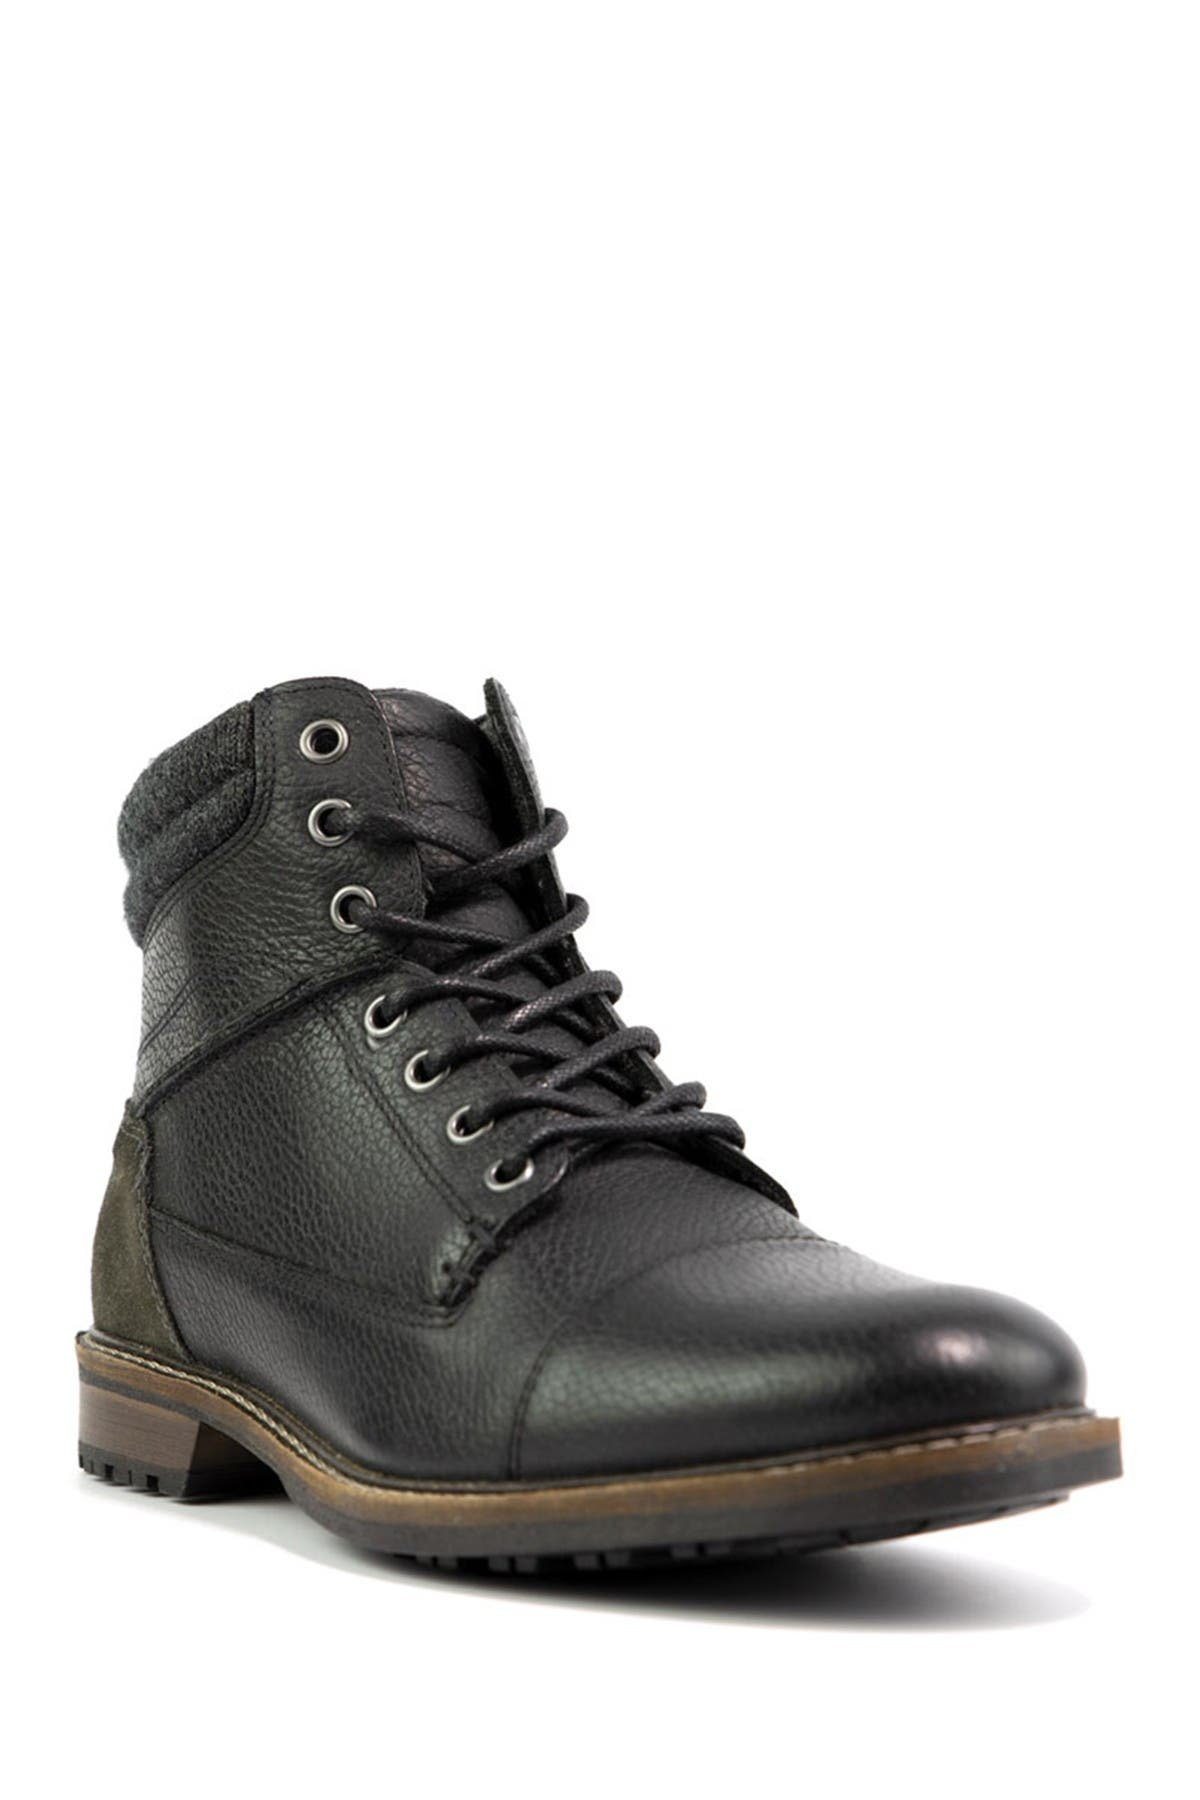 Image of Crevo Canton Lace-Up Boot